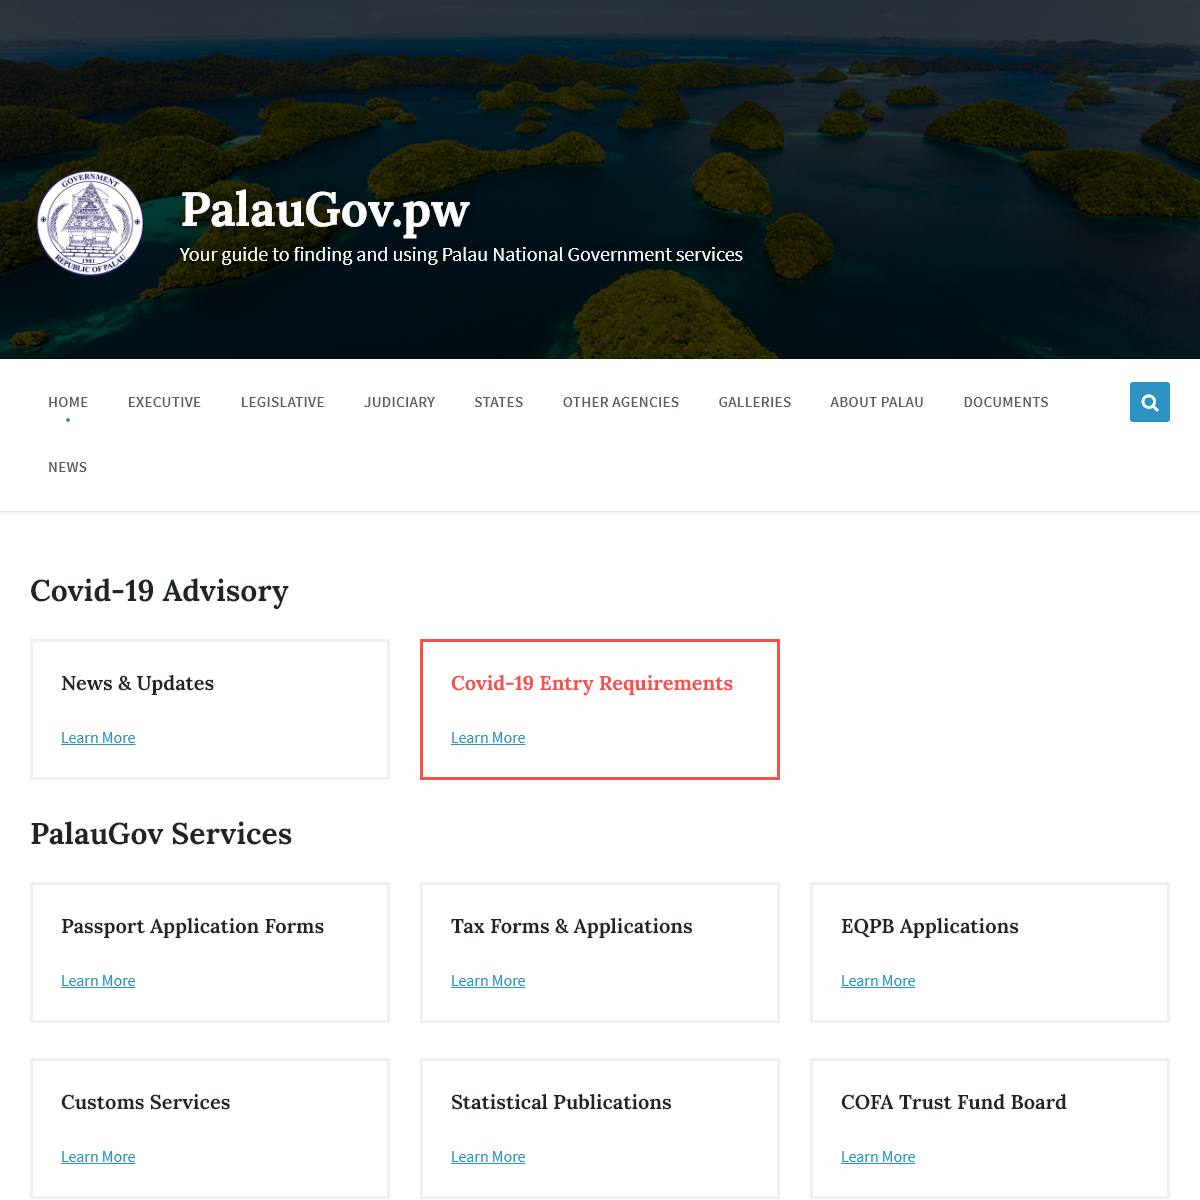 PalauGov.pw – Your guide to finding and using Palau National Government services